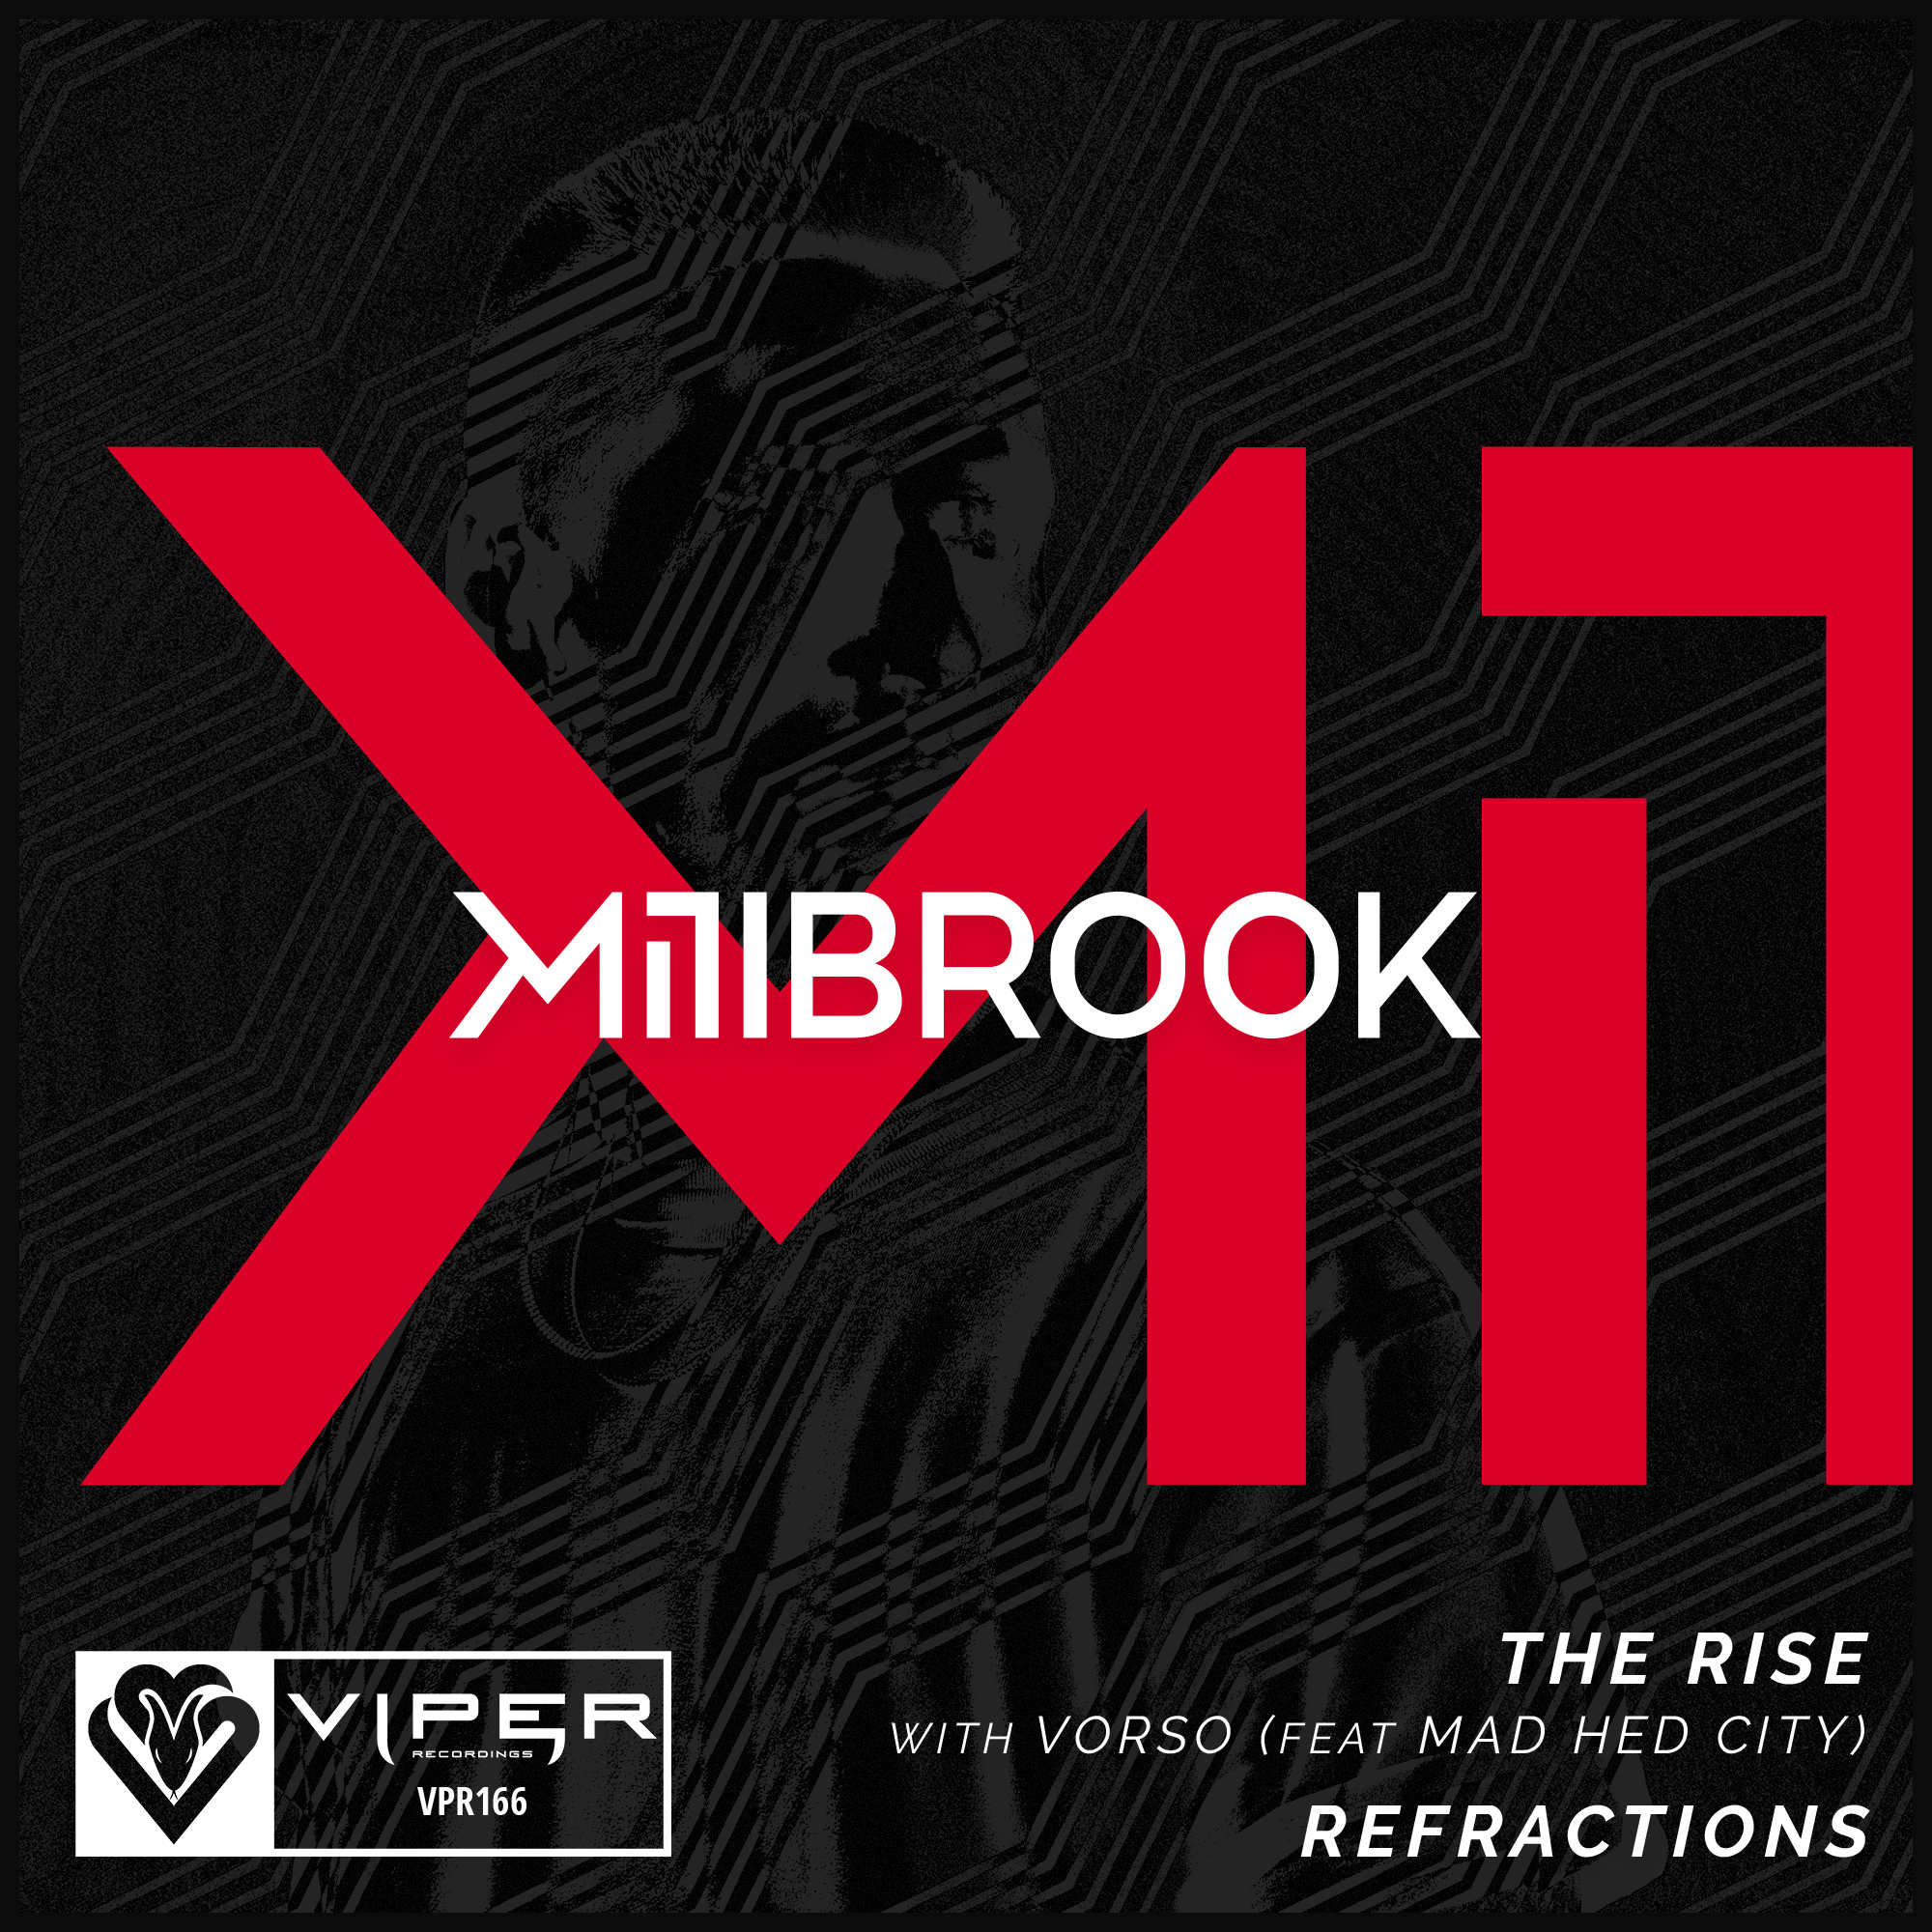 MILLBROOK - THE RISE / REFRACTIONS